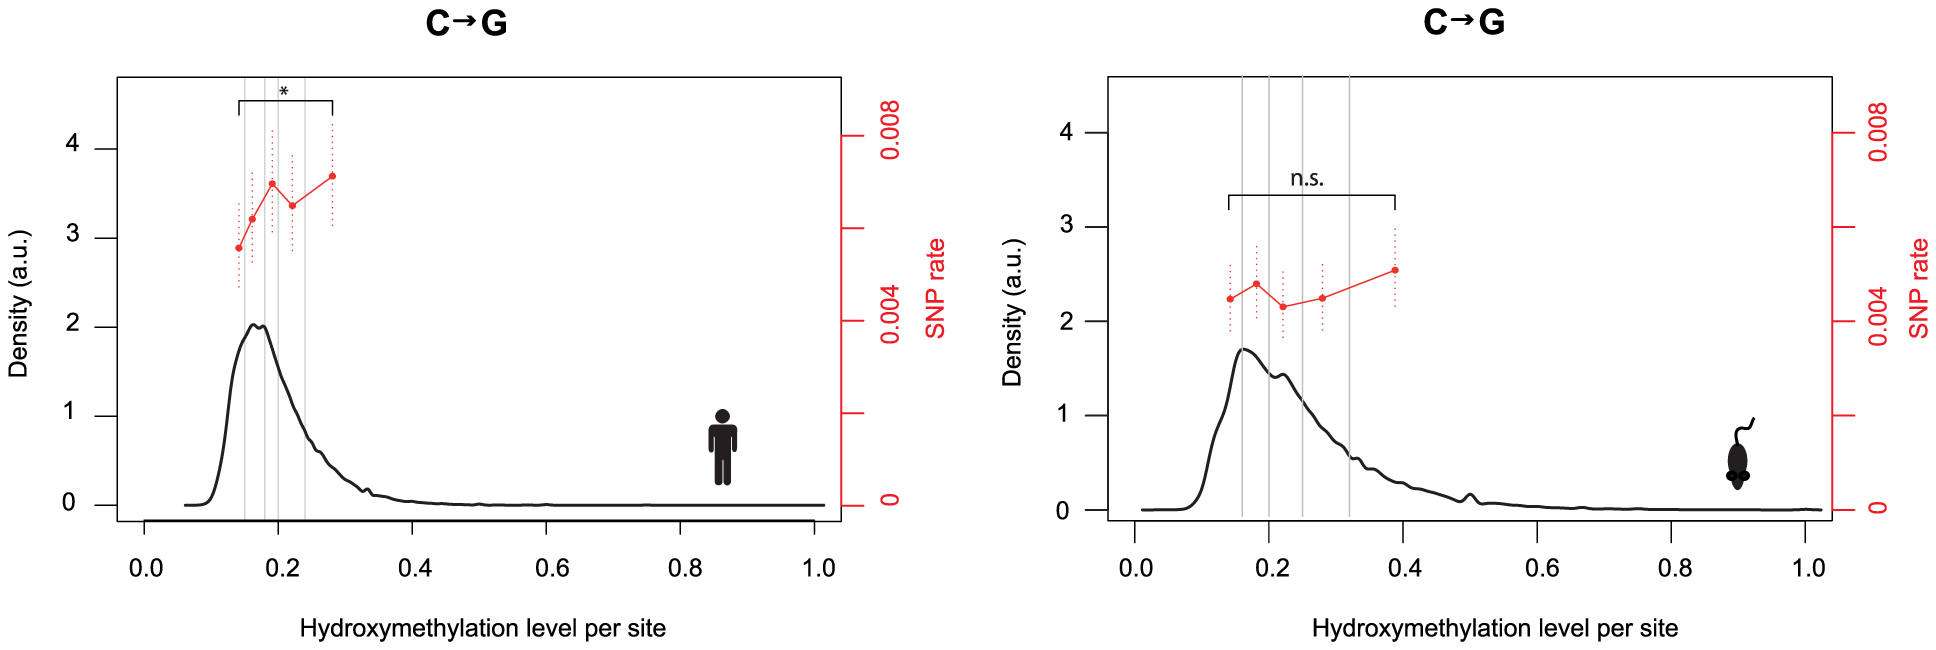 Hydroxmethylation levels correlate with C to G rates.